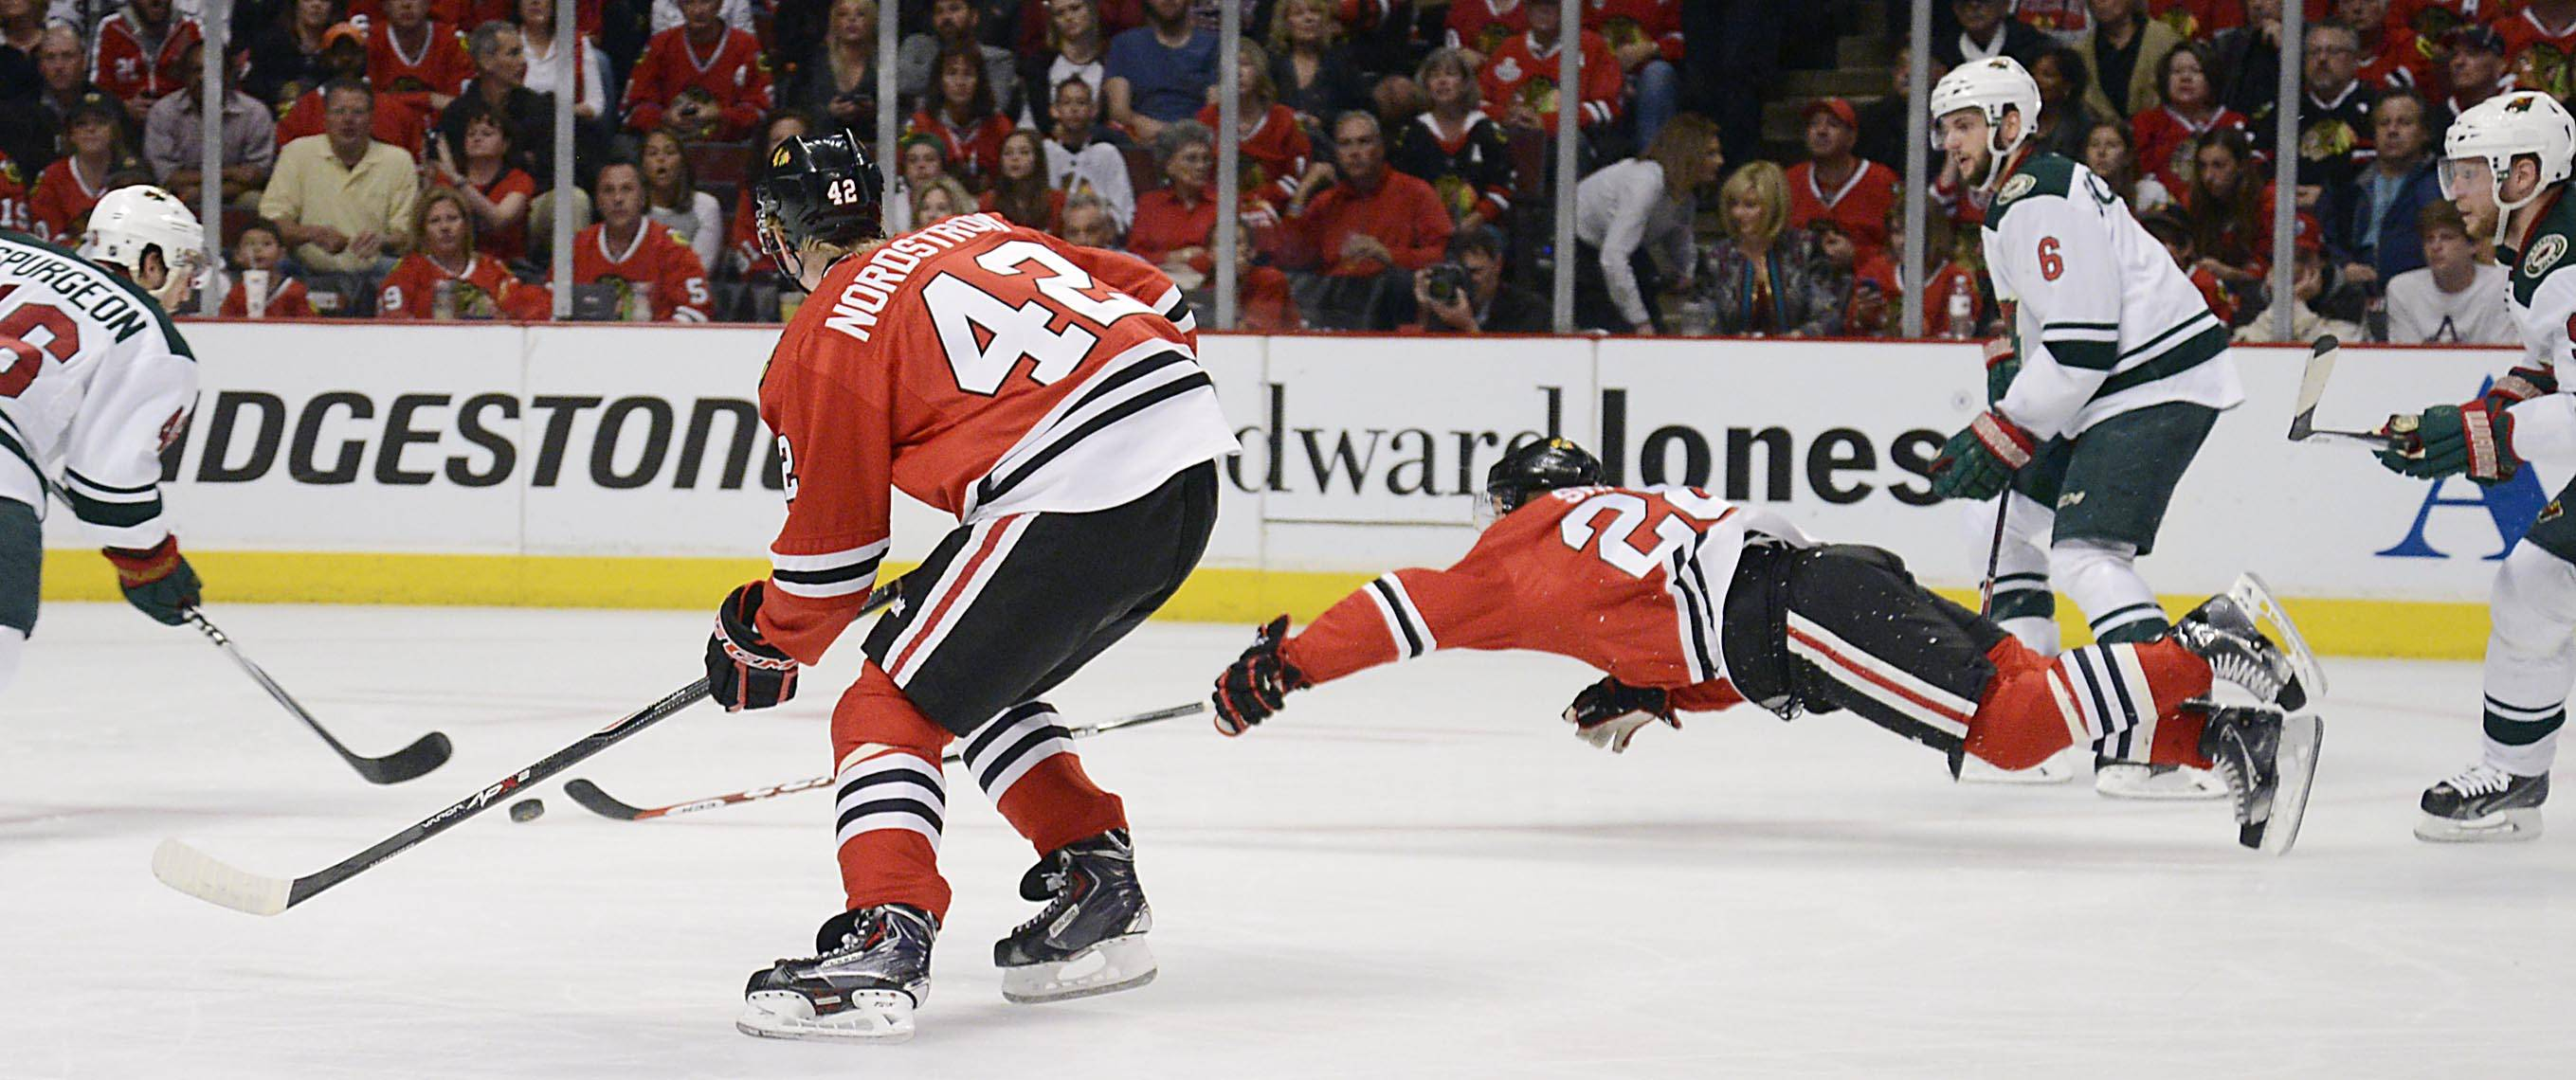 Chicago Blackhawks right wing Ben Smith lunges for the puck Sunday.